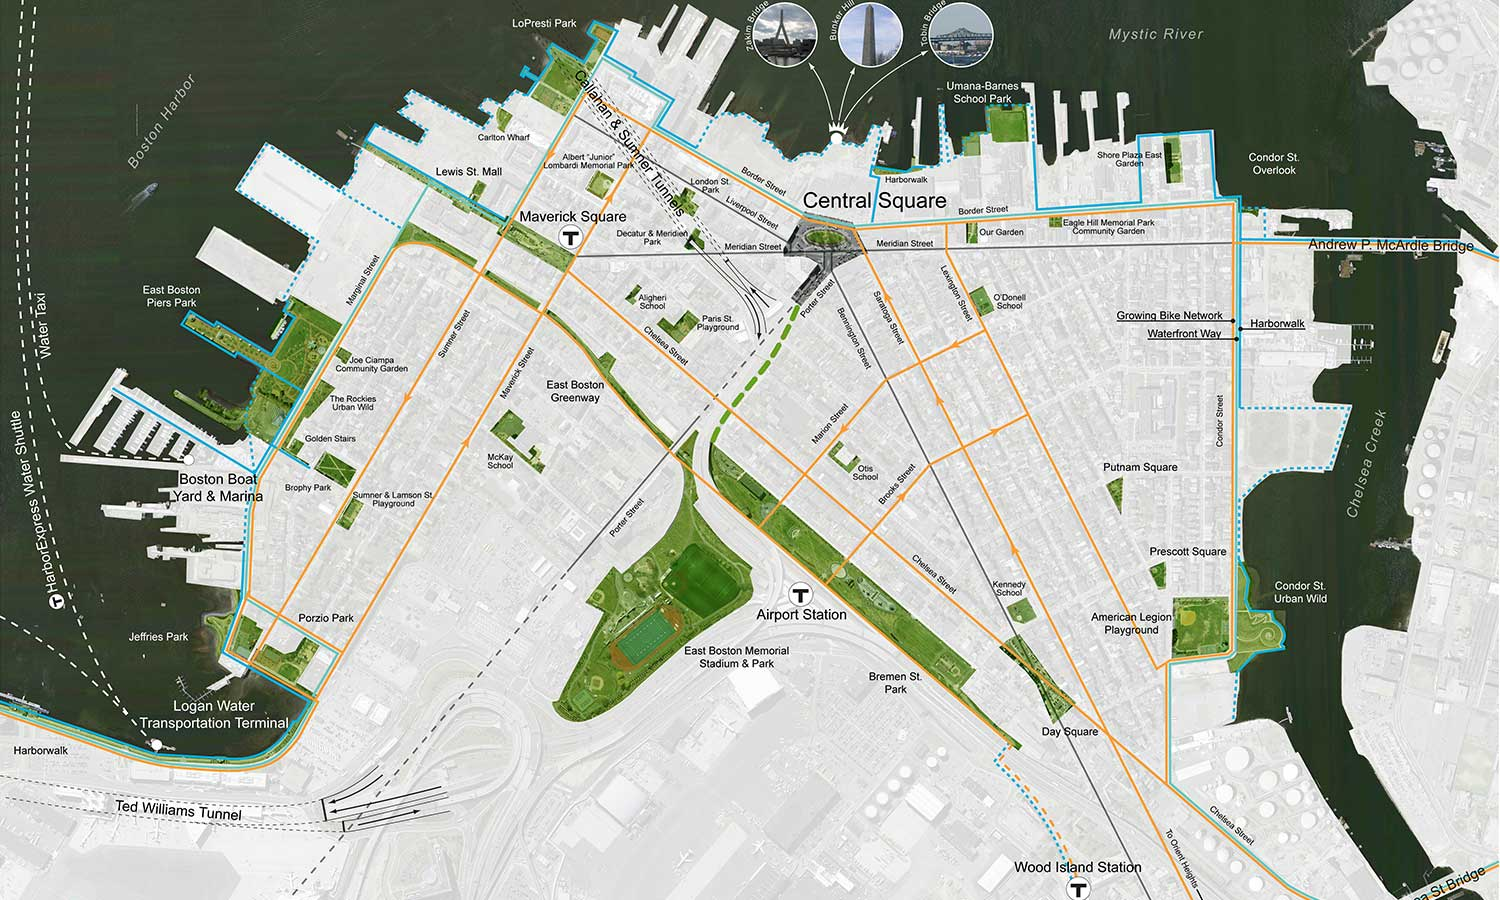 Central-Square-East-Boston_Urban-Design-Connections_Klopfer-Martin.jpg